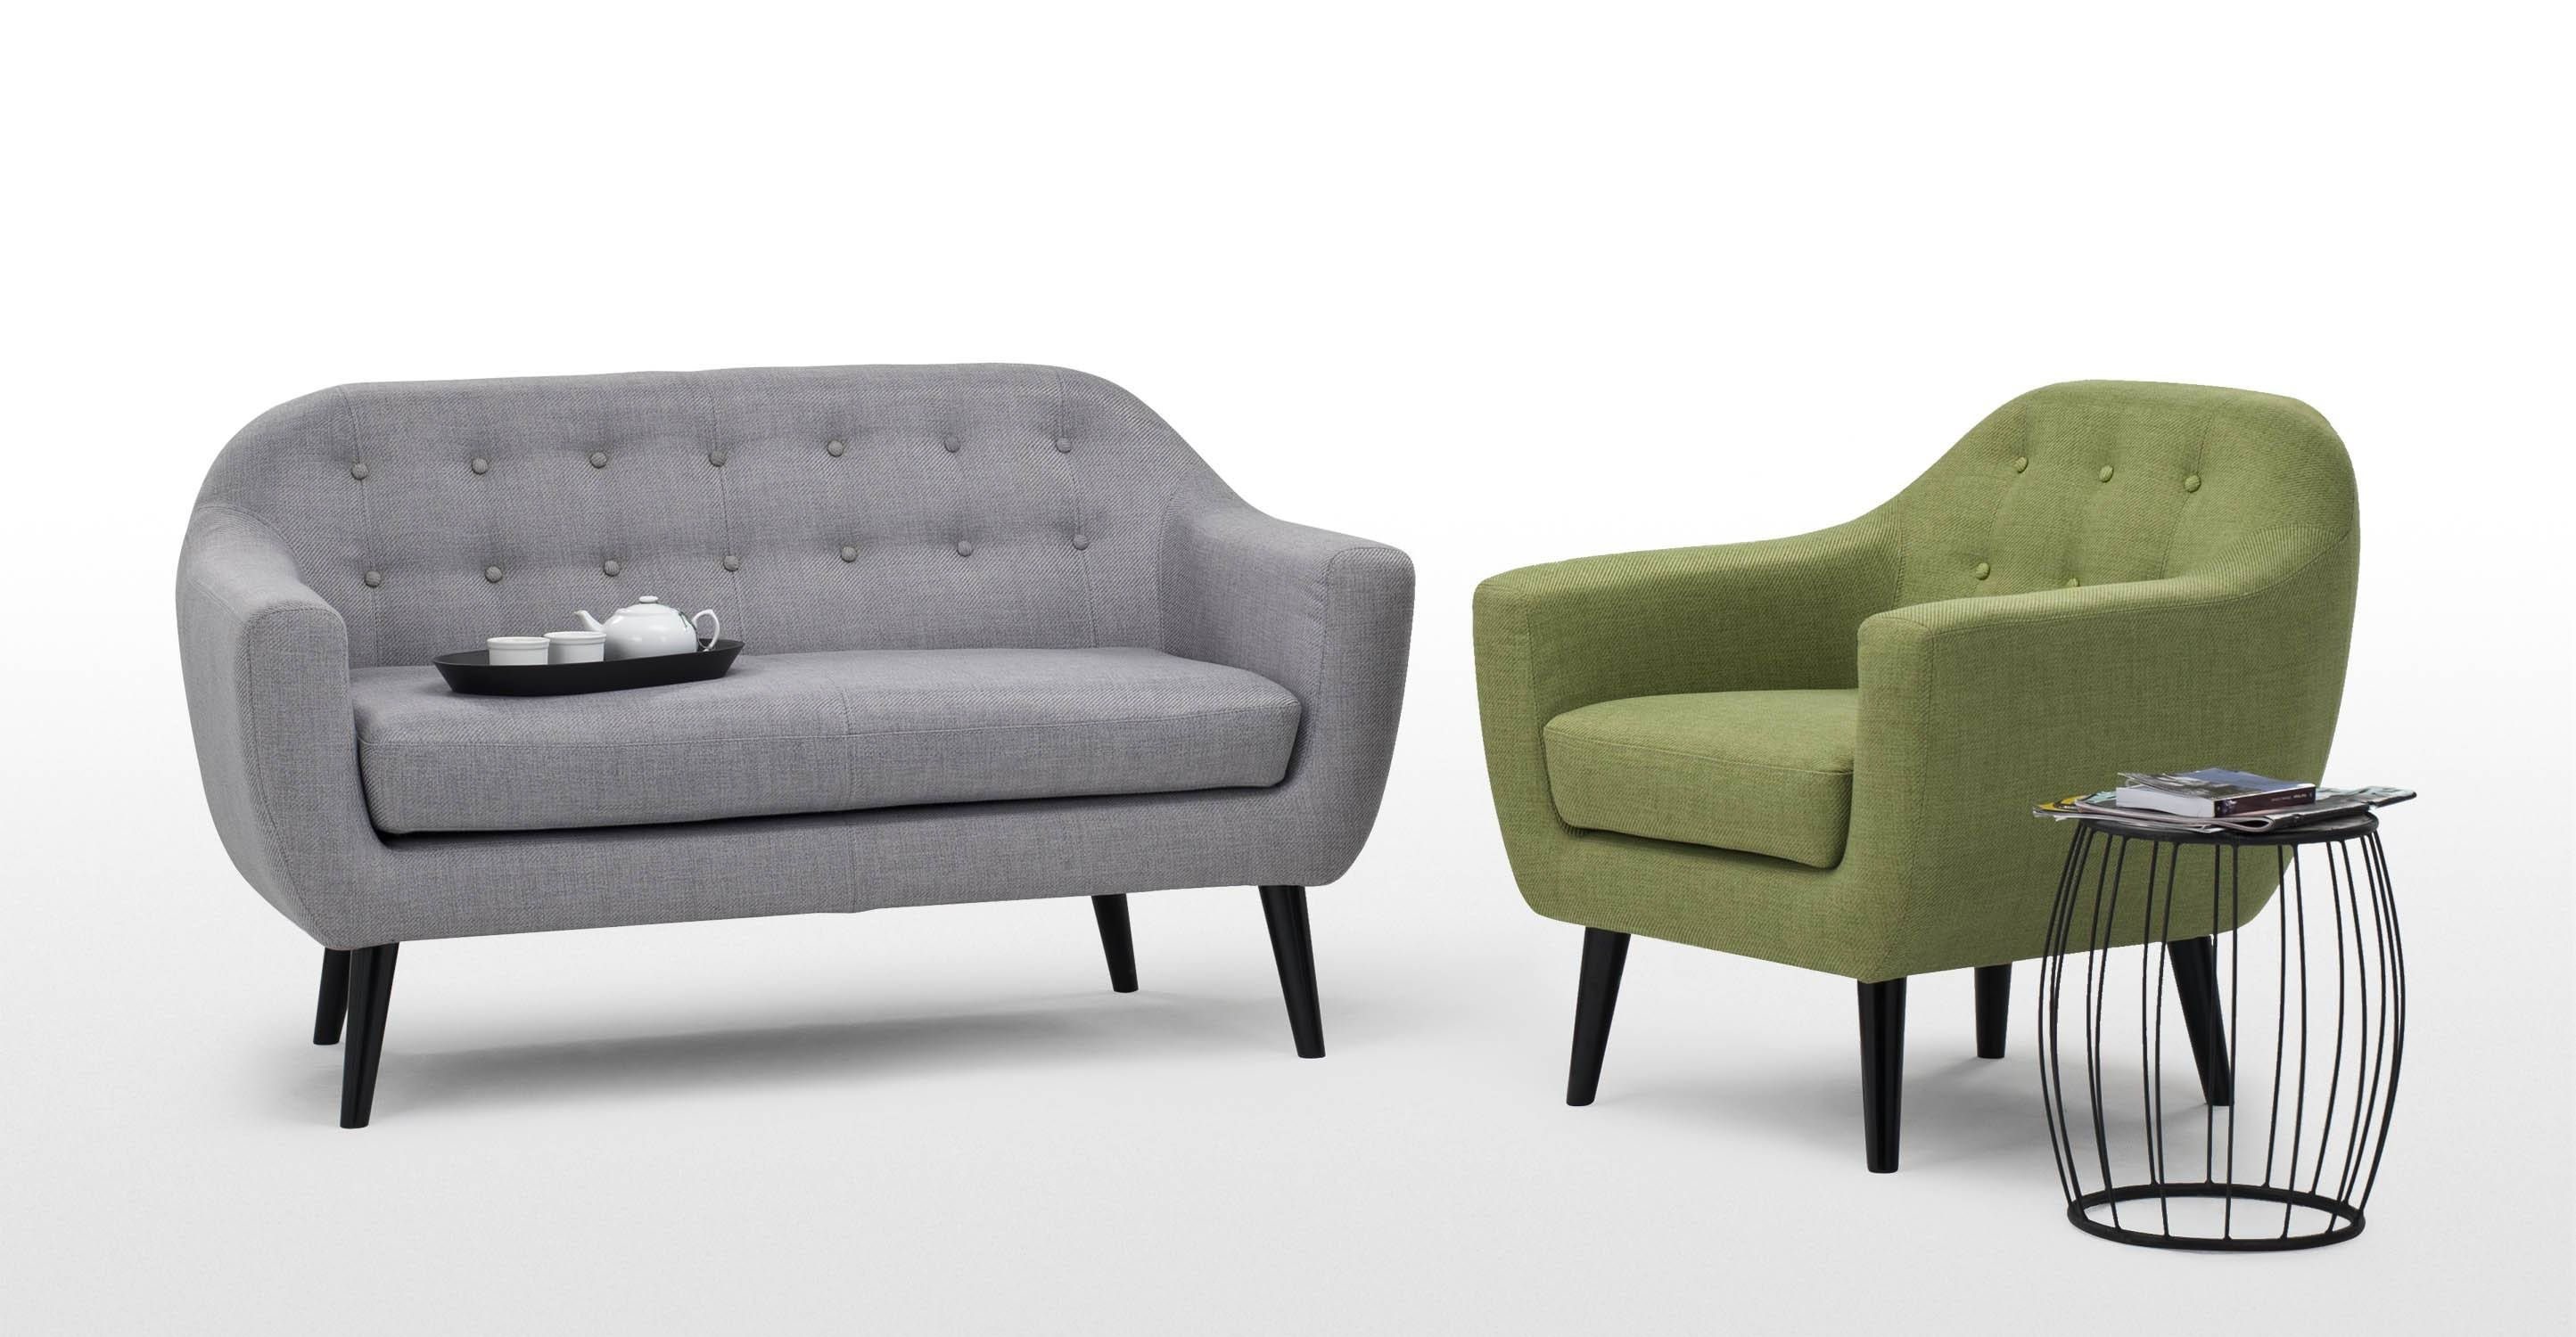 Sofas Center : Seaterfafas Uk Small Uk2 Beds Covers2 With Chaise2 Regarding Small 2 Seater Sofas (View 24 of 30)